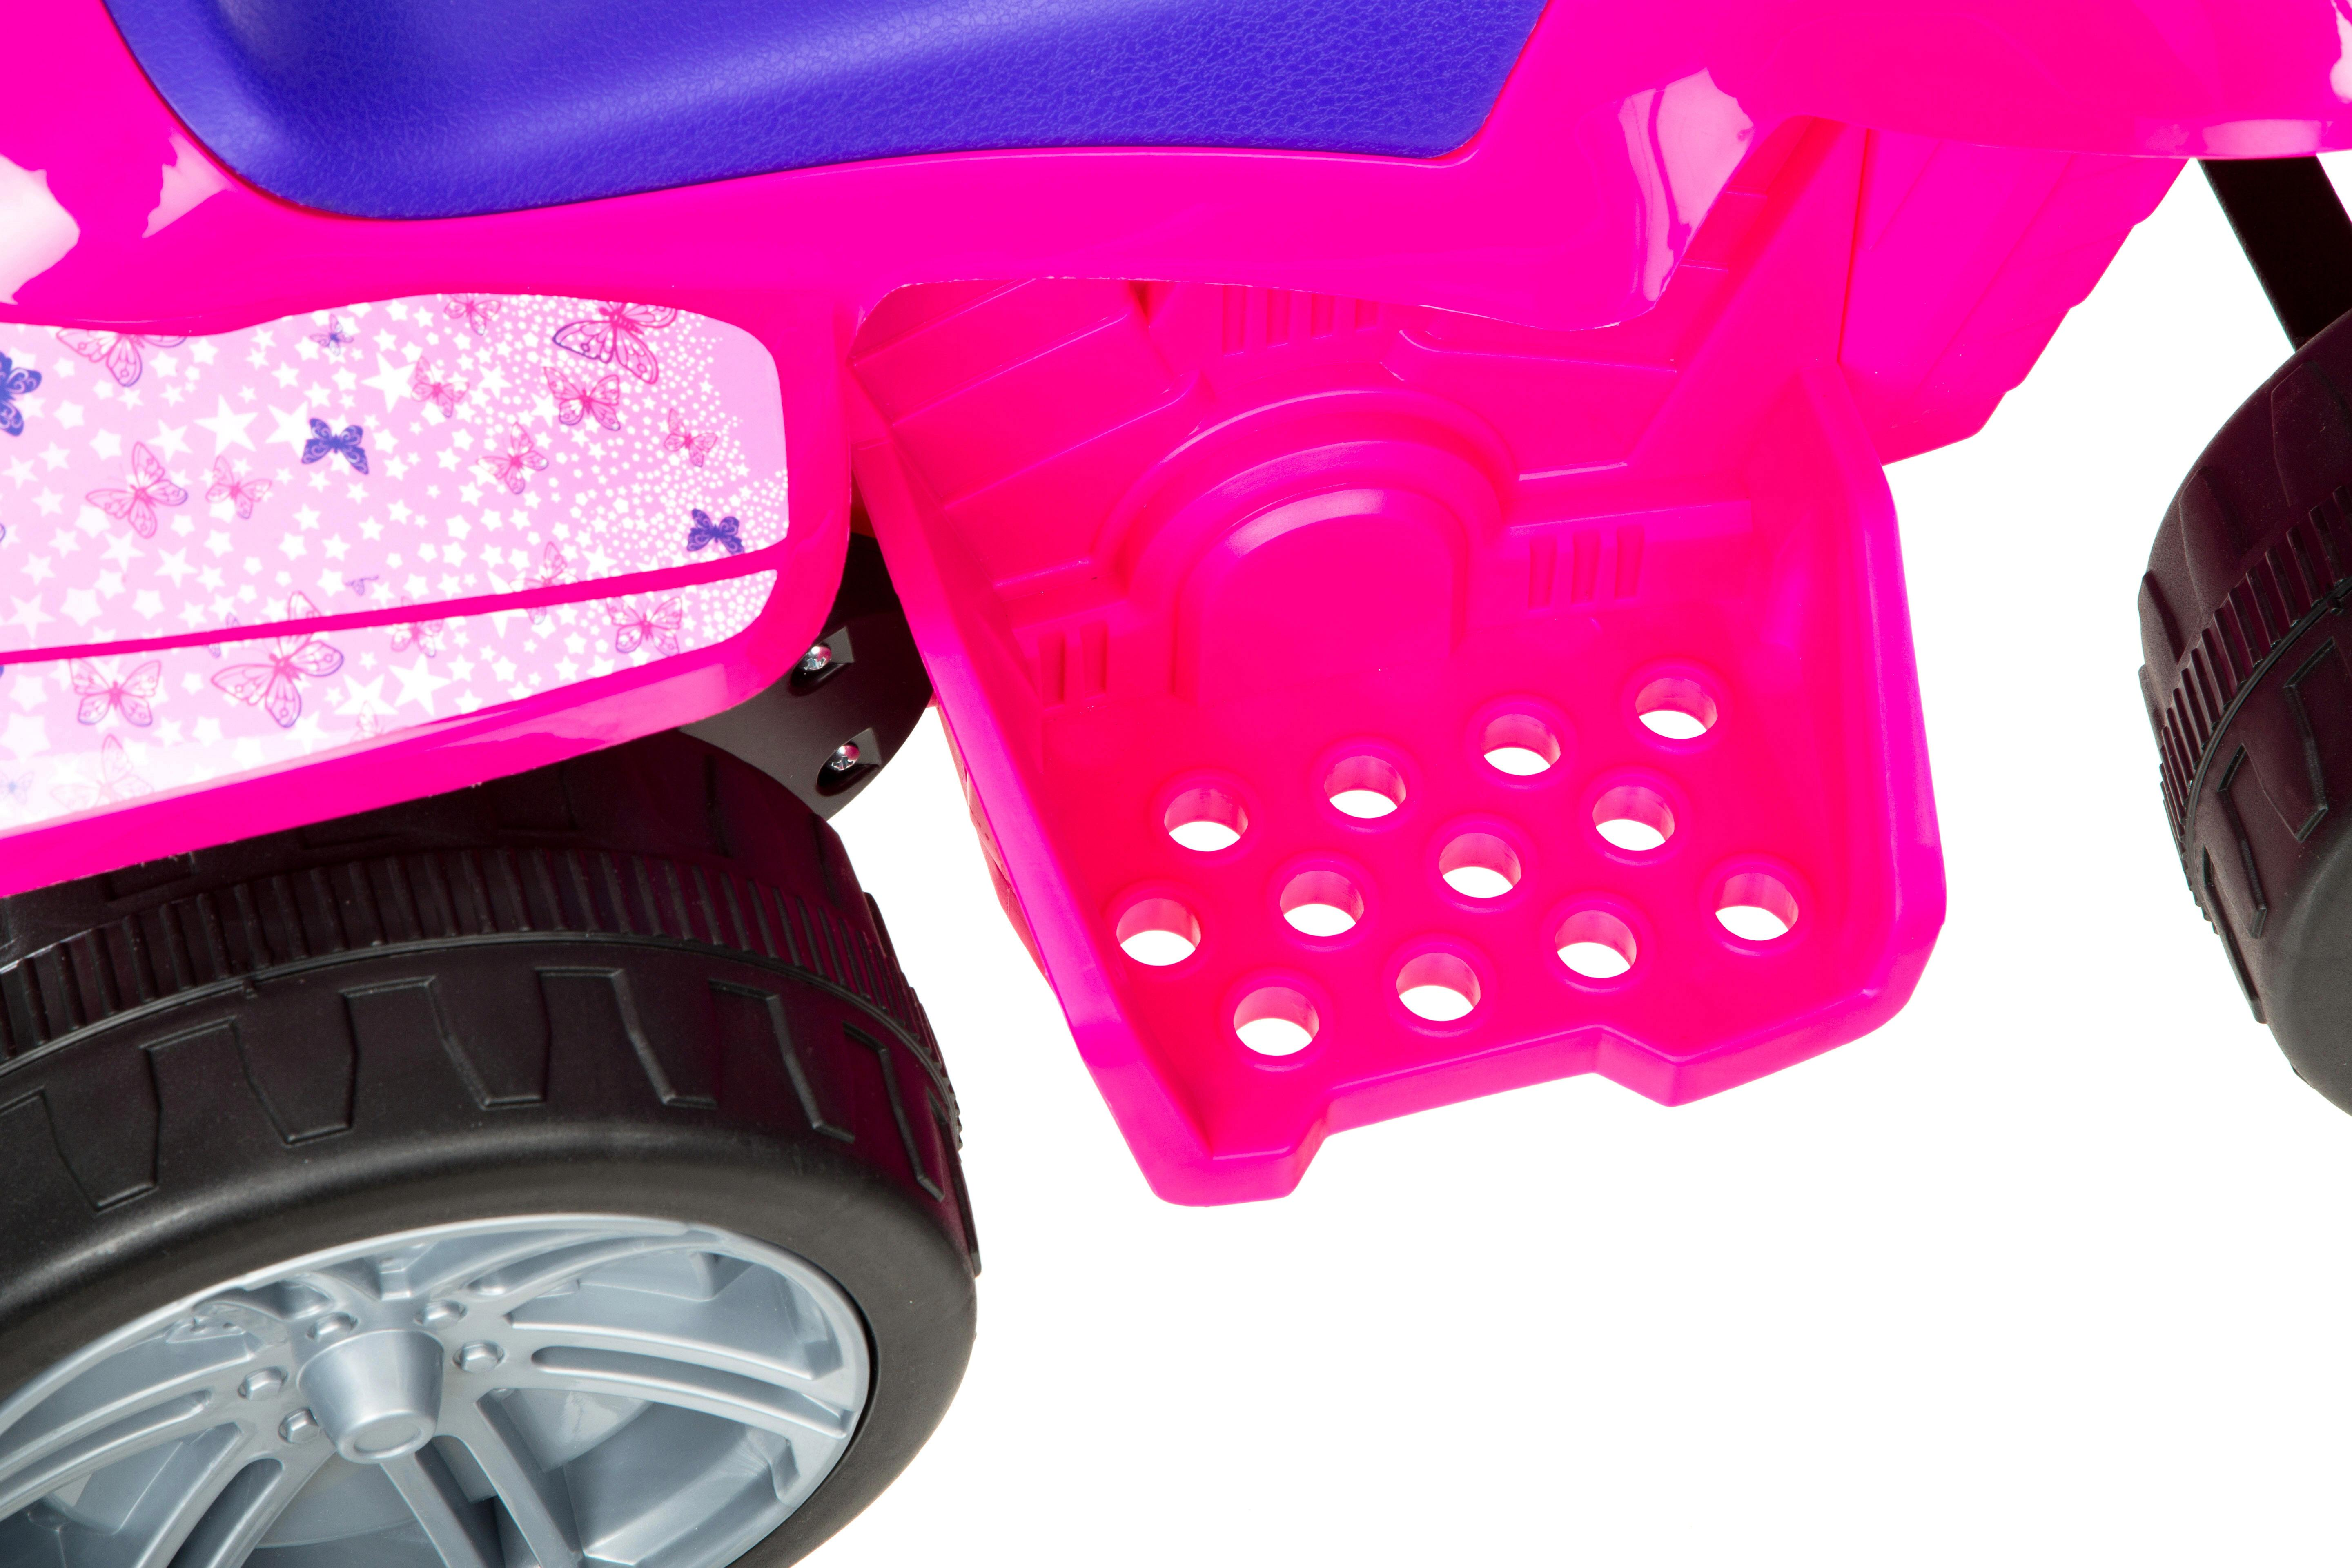 Roadsterz-Volt-6V-Electric-Ride-On-Quad-Rechargeable-Battery-4-Wheels-Kids thumbnail 9